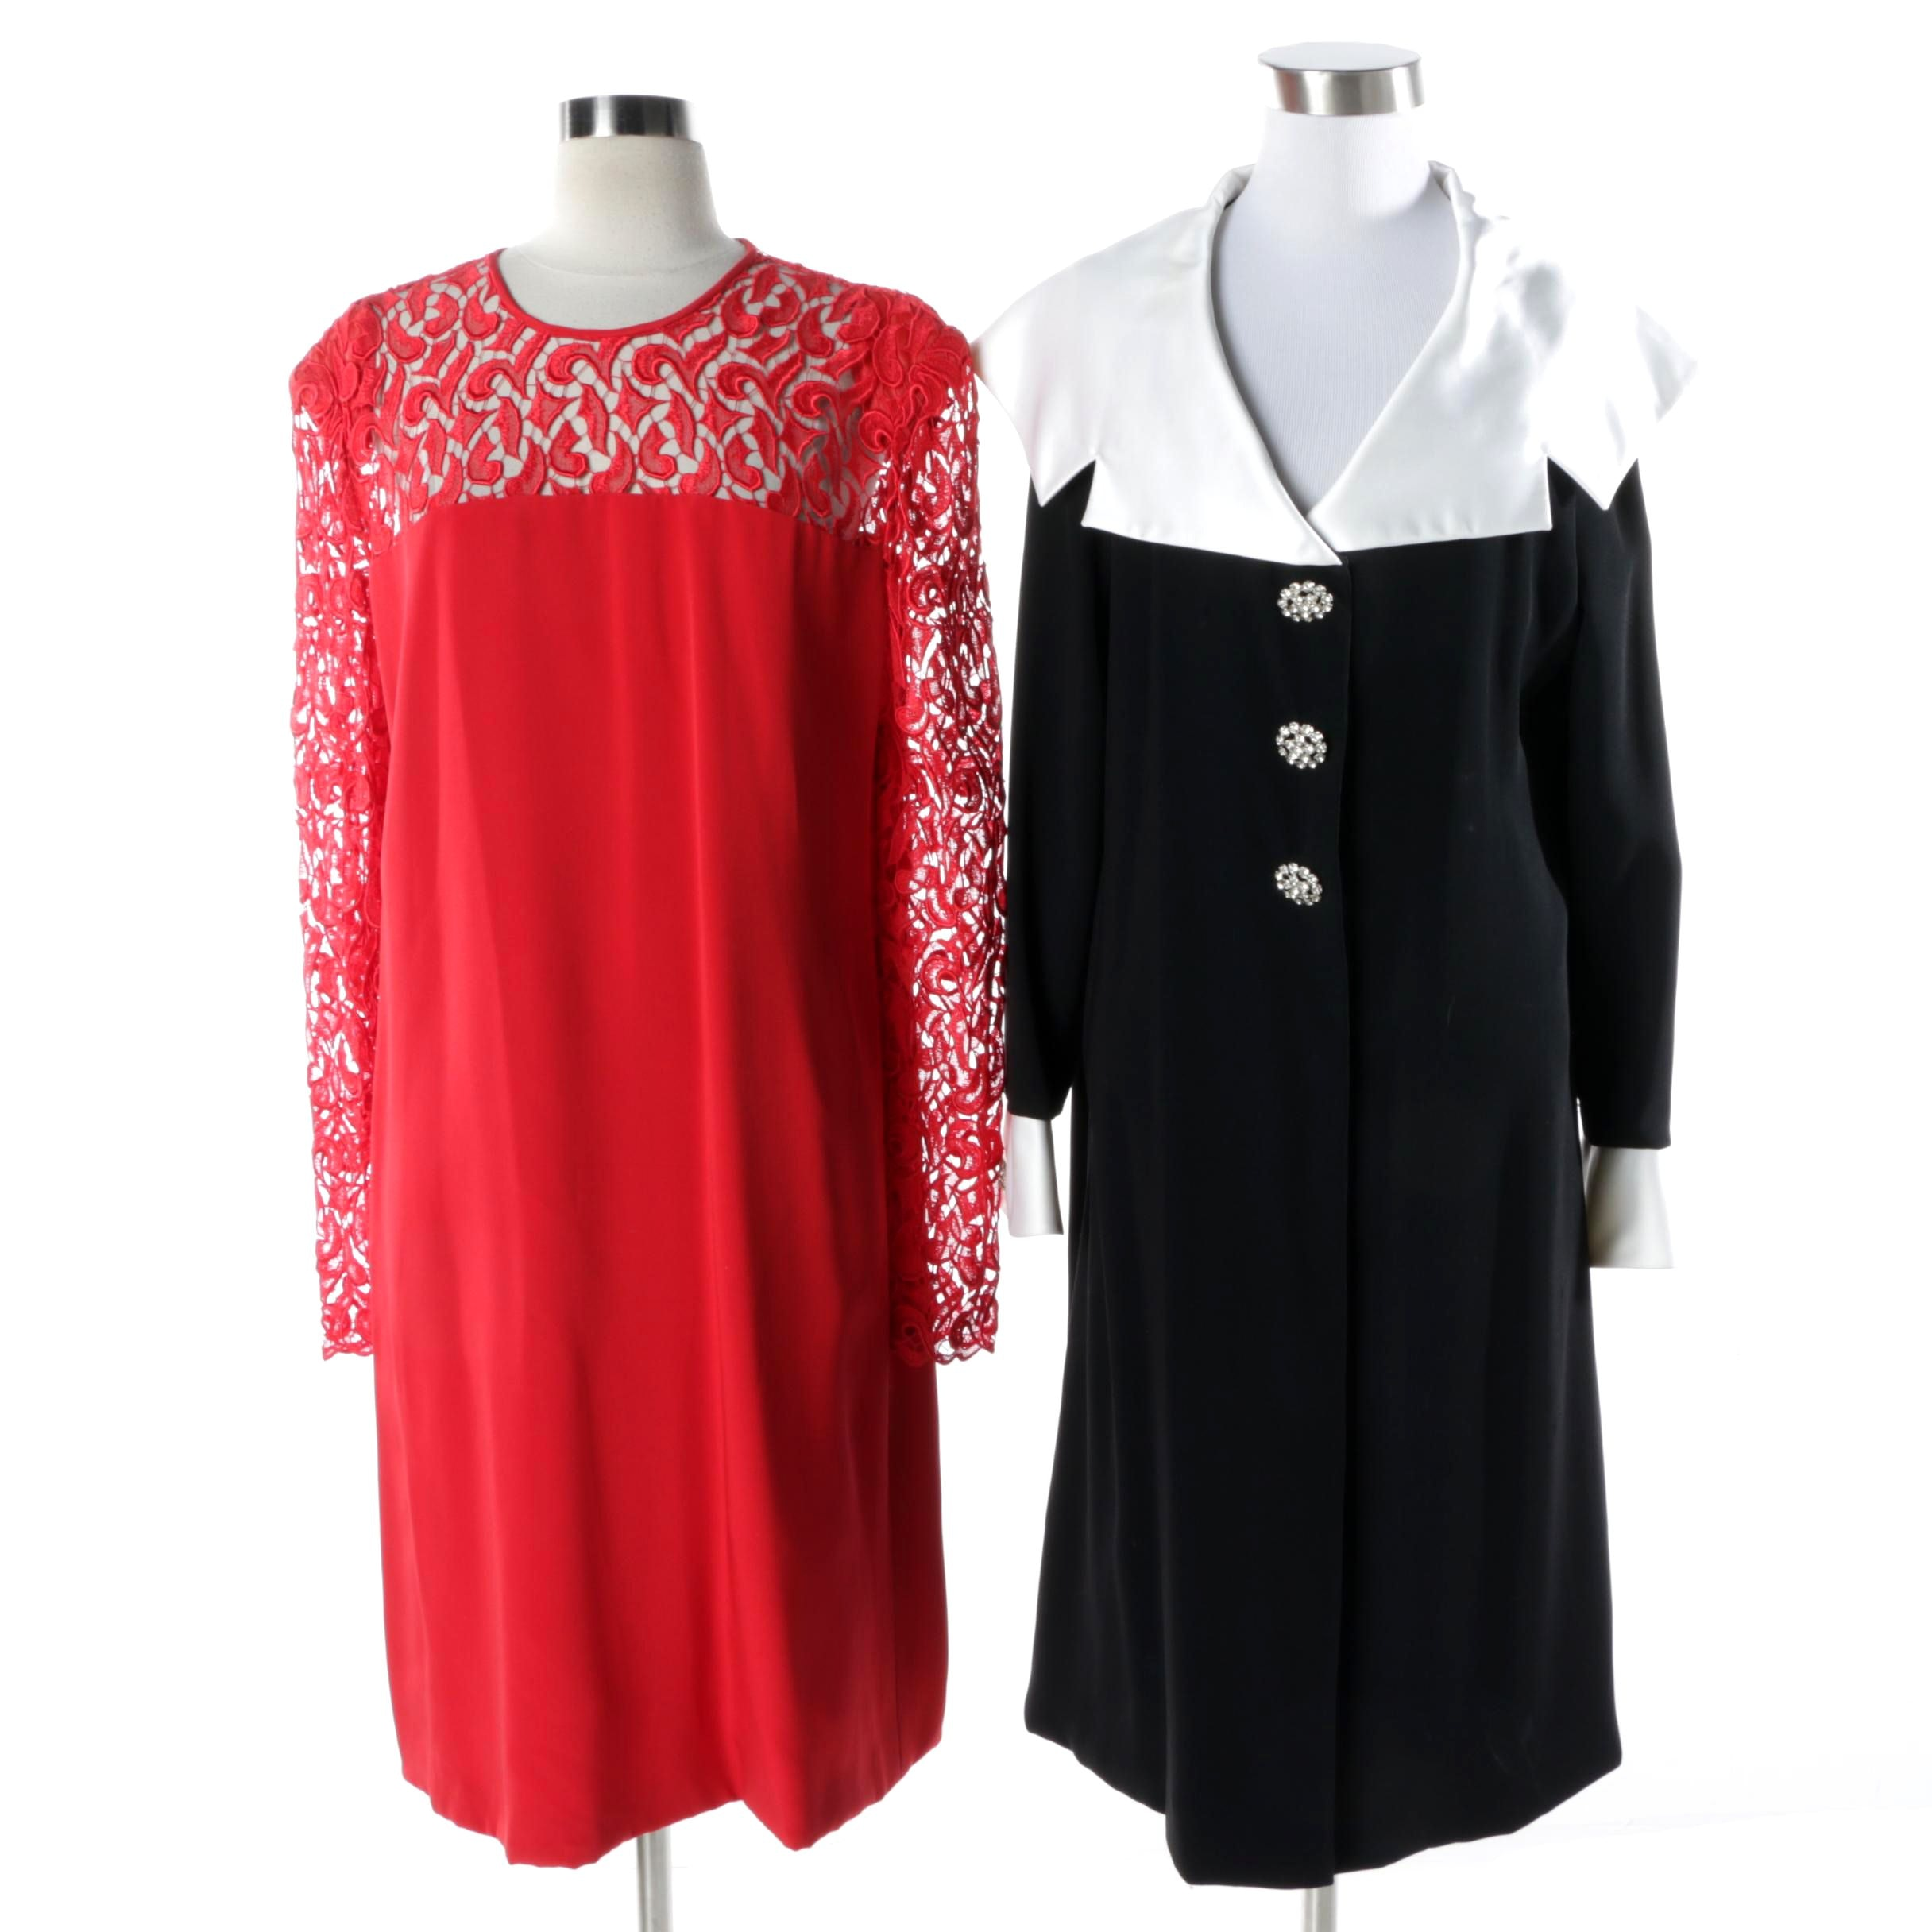 Women's Travilla Brand Dresses Including Red Lace